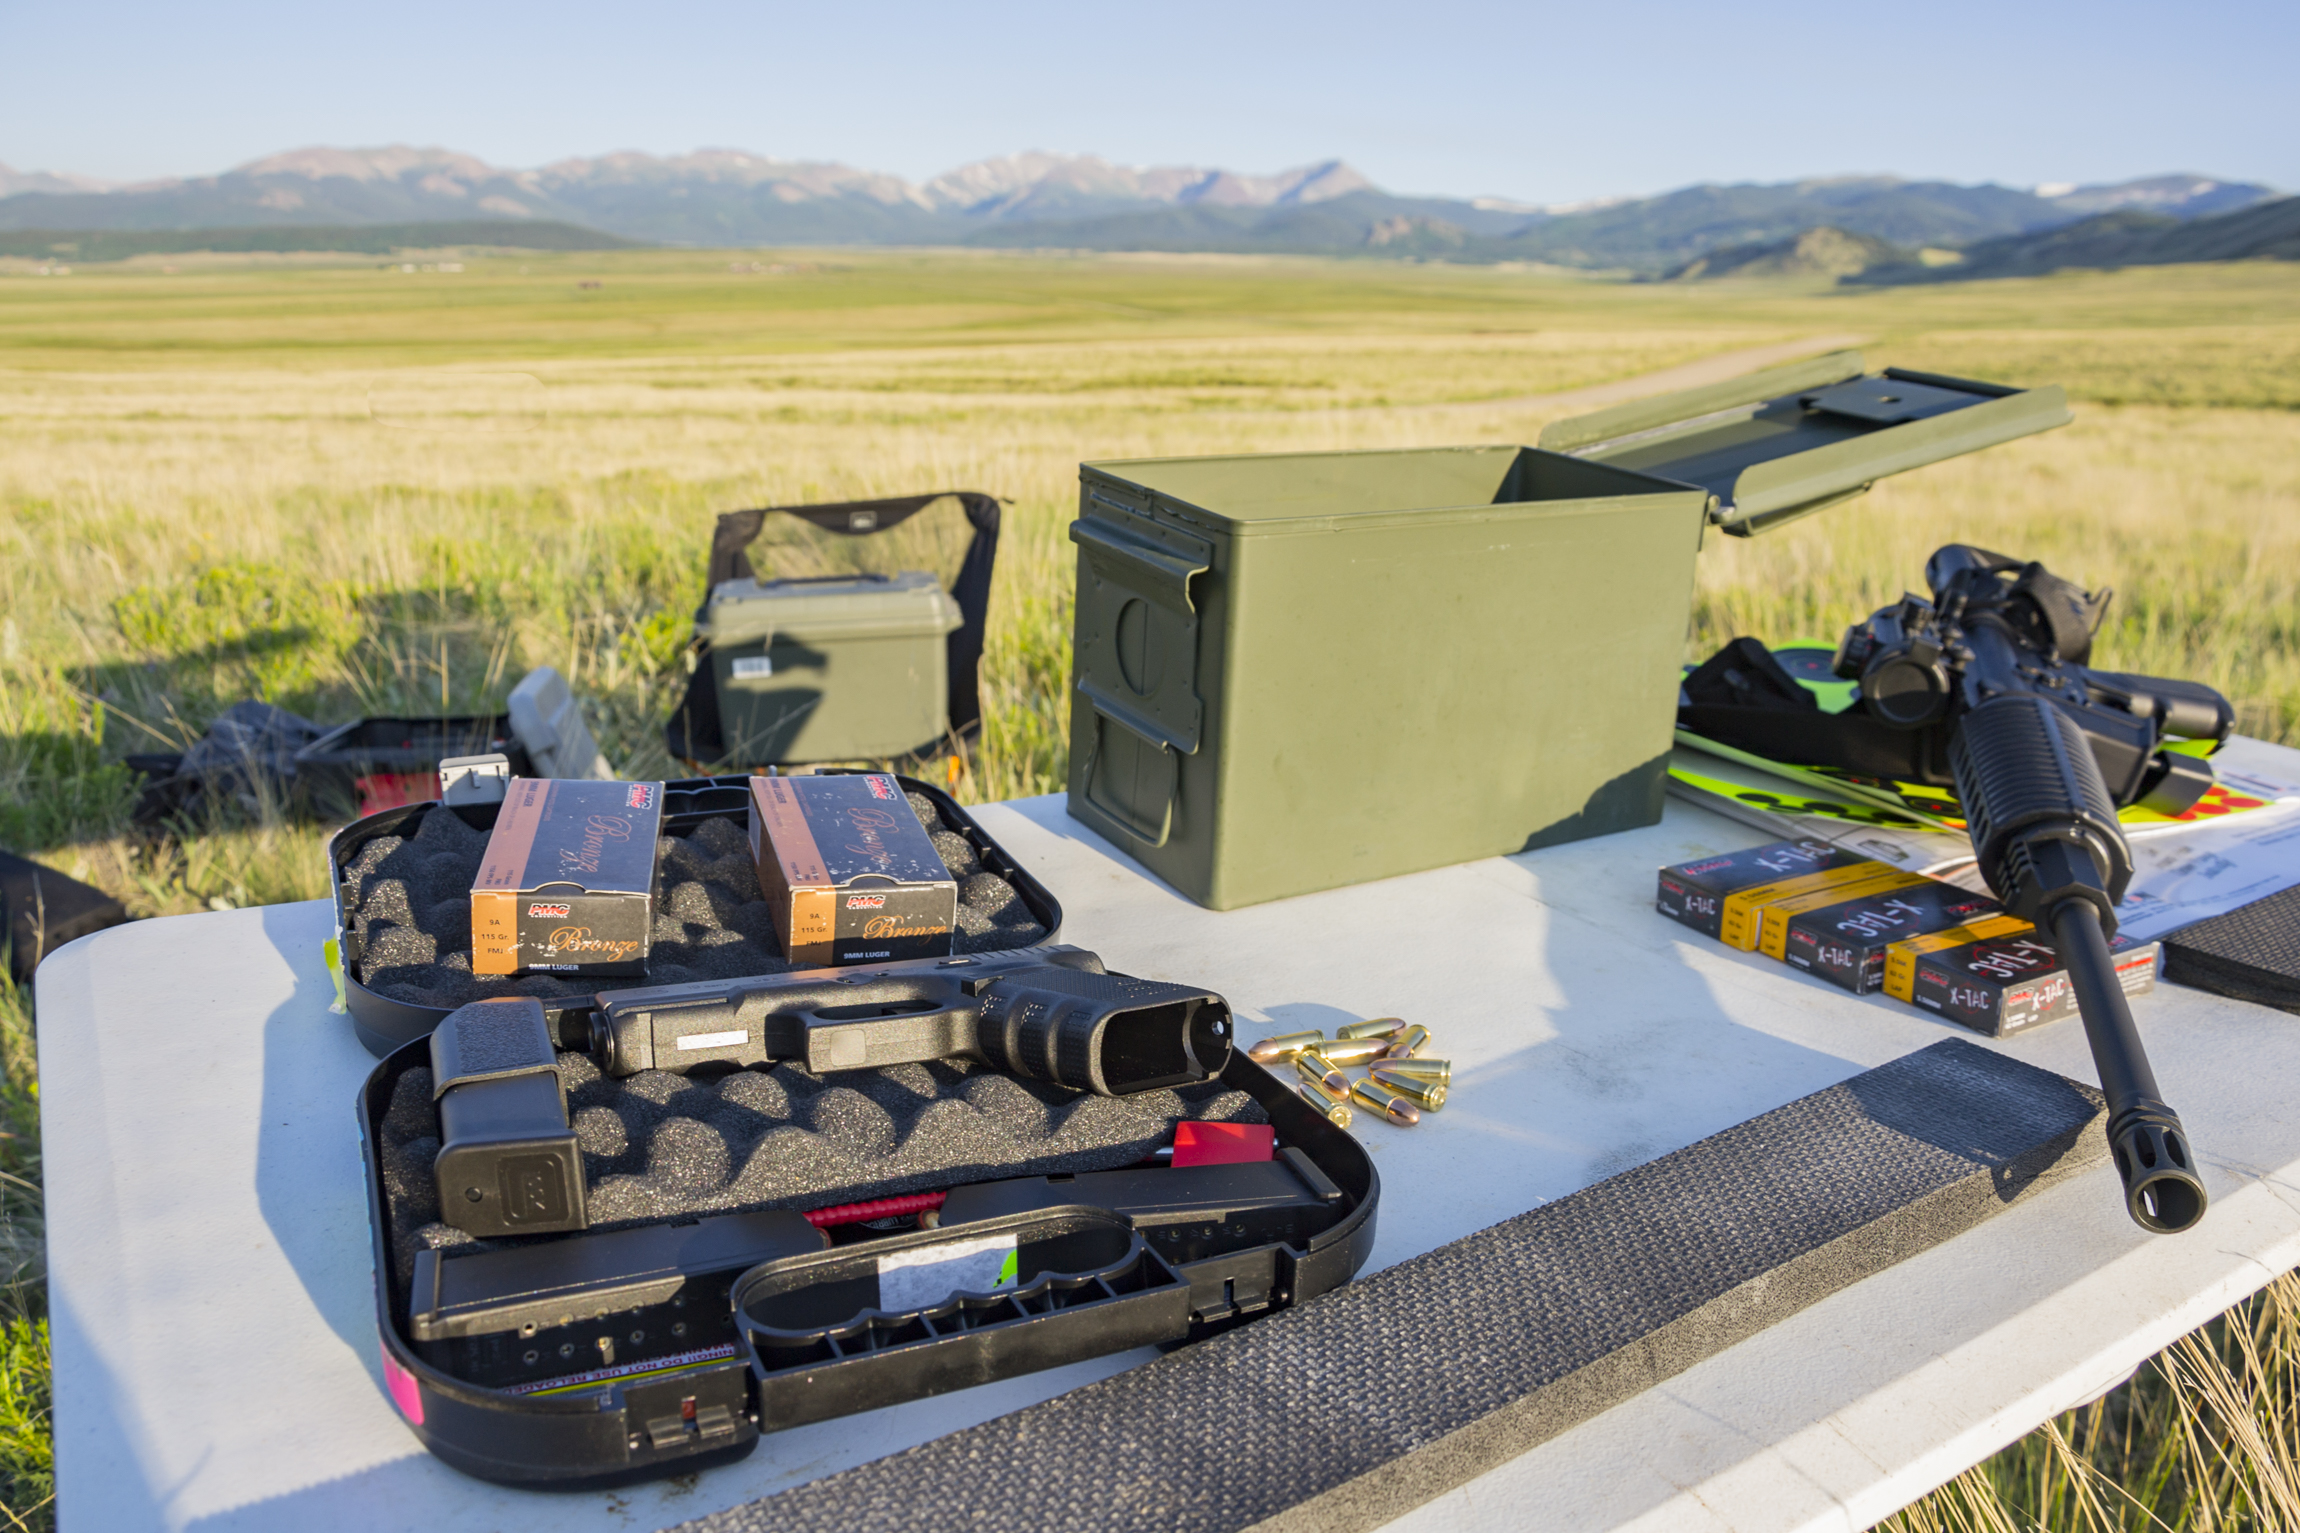 Firearm target shooting in Pike-San Isabel National Forest